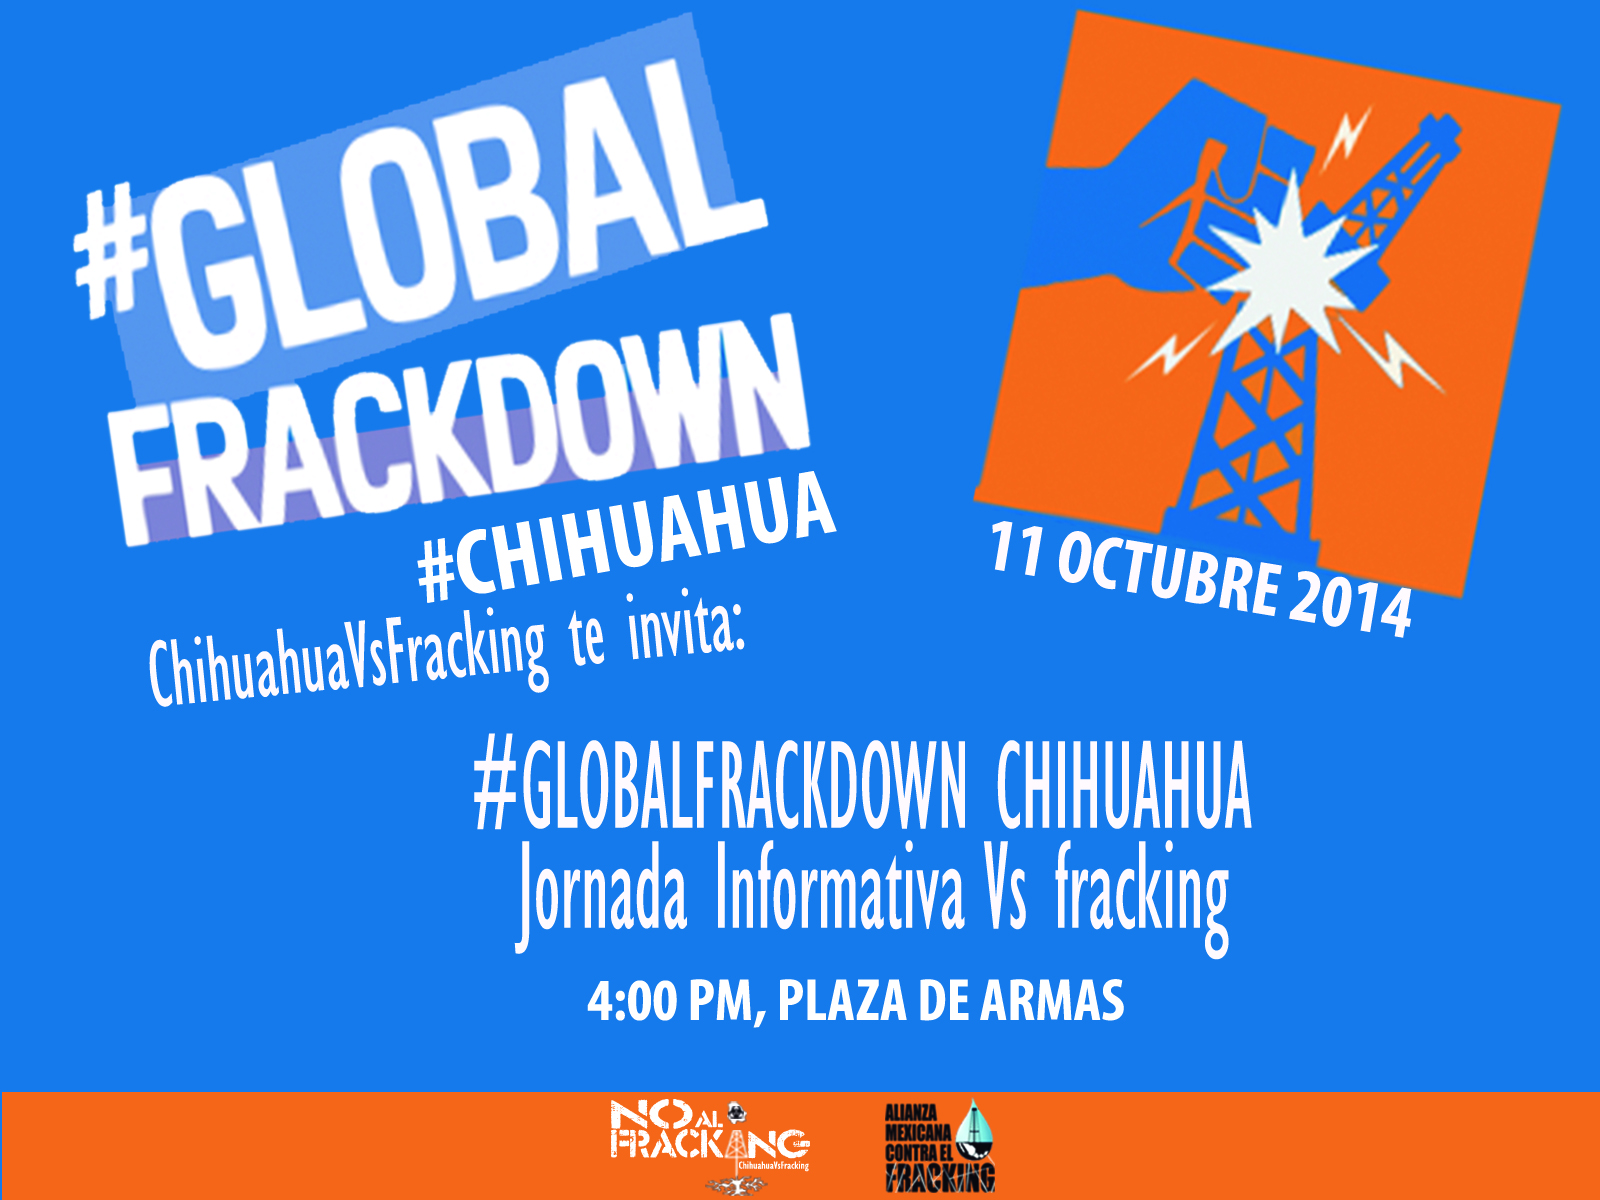 Global frackdown Chih vs fracking